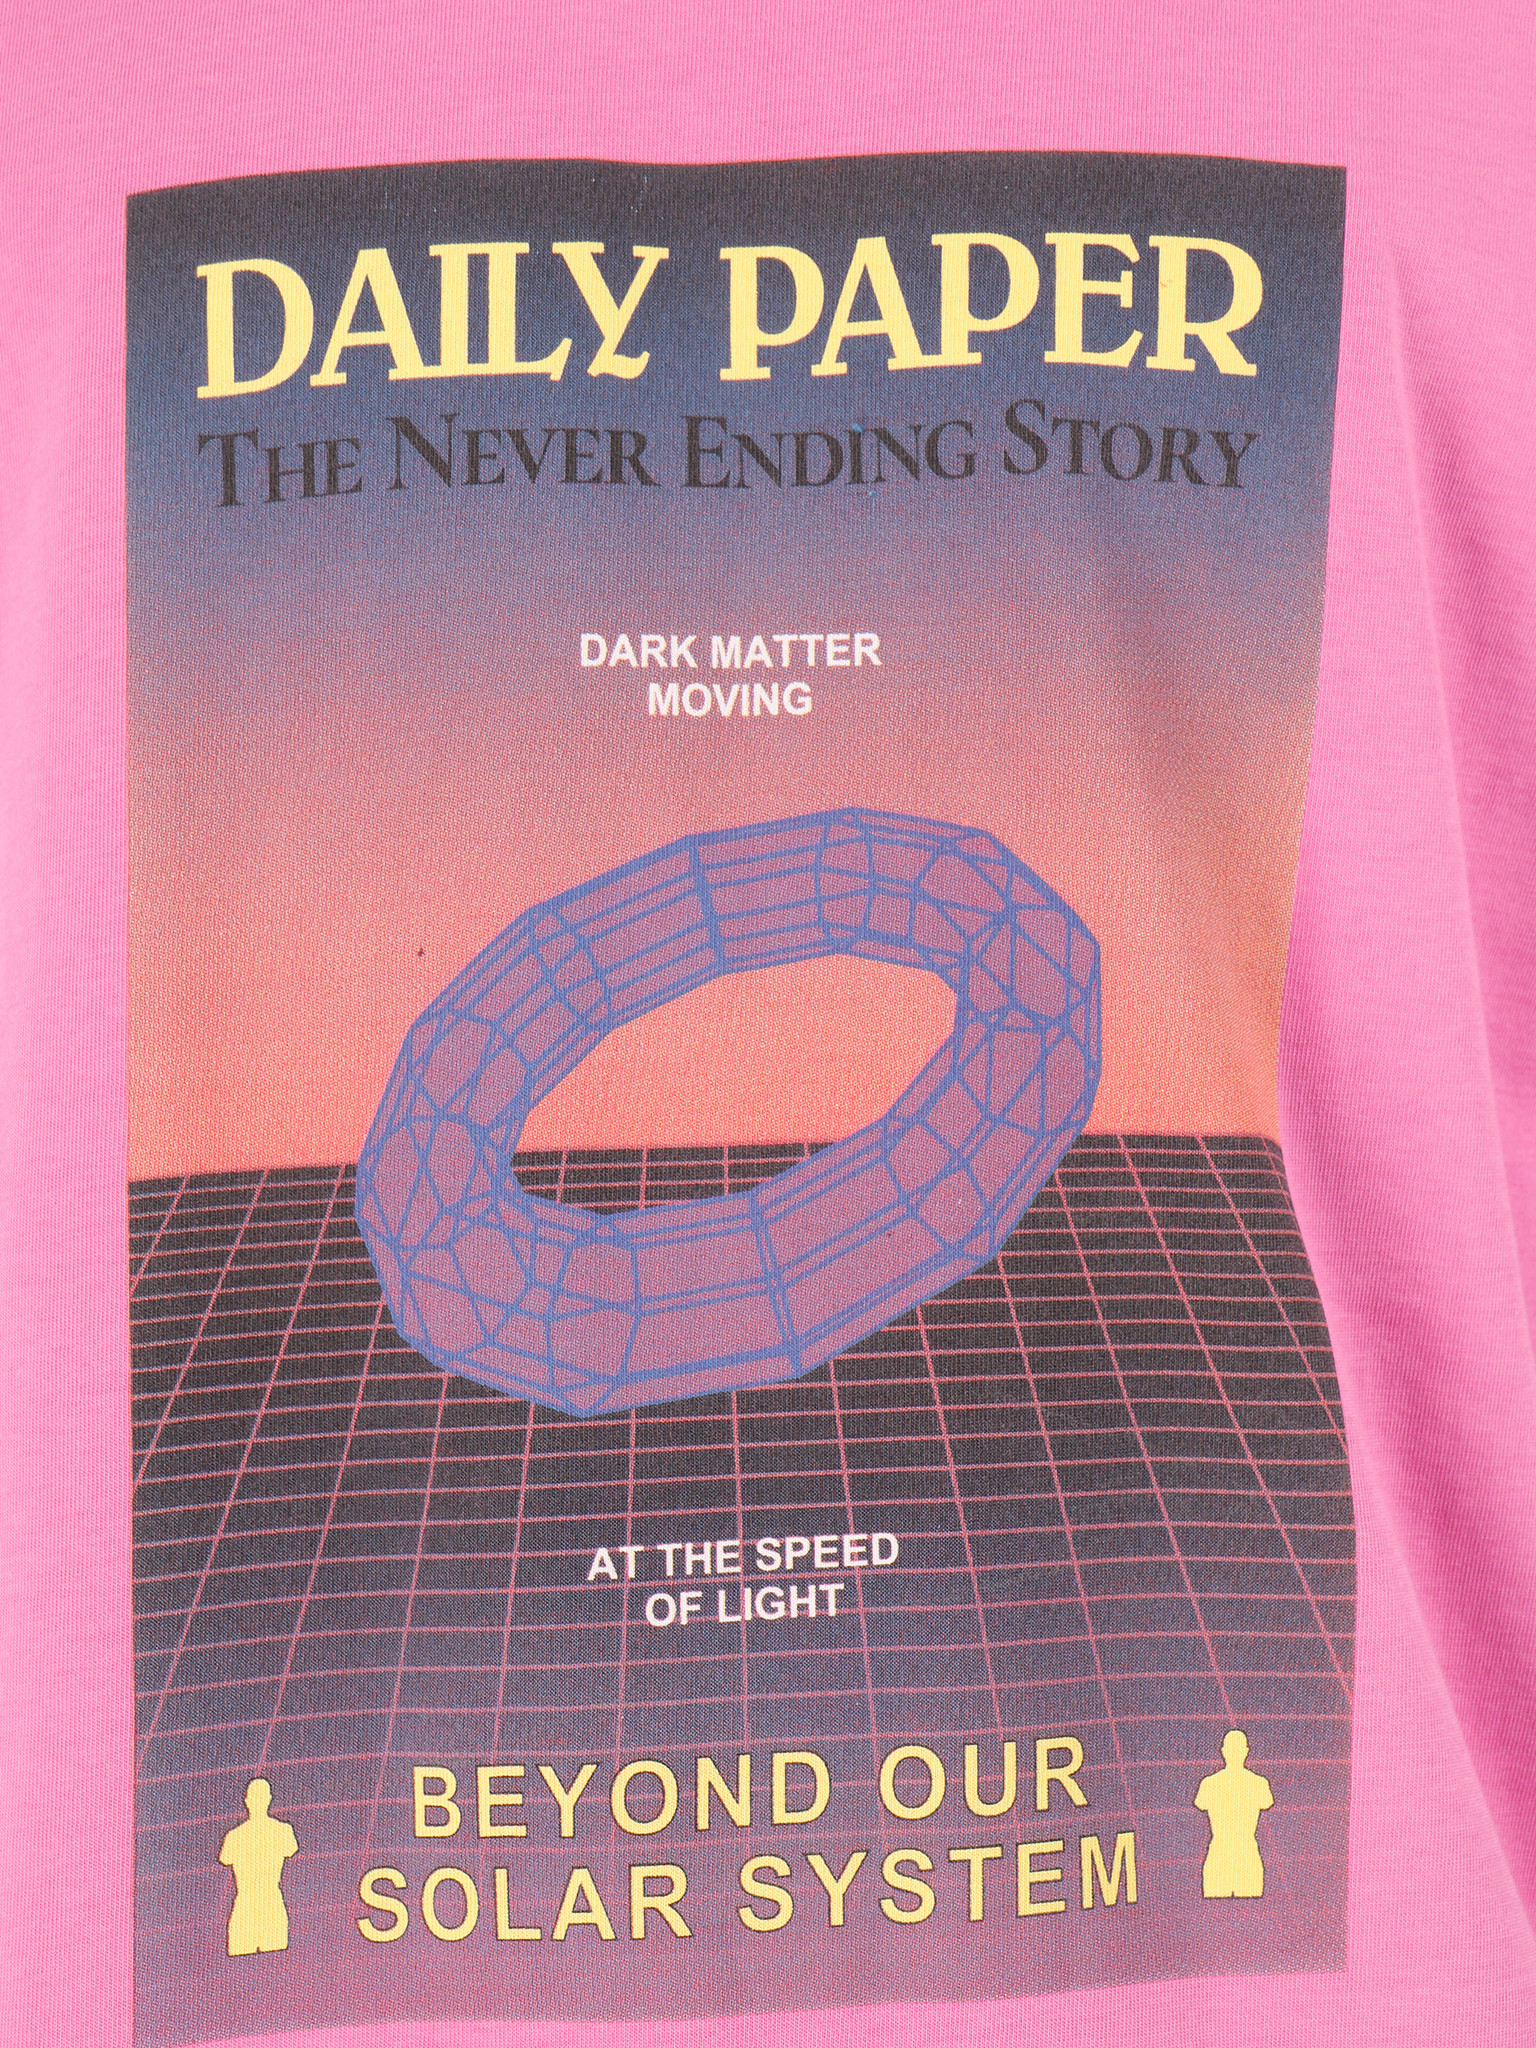 Daily Paper Daily Paper Gensupi T-Shirt Super Pink 19F1TS23-01